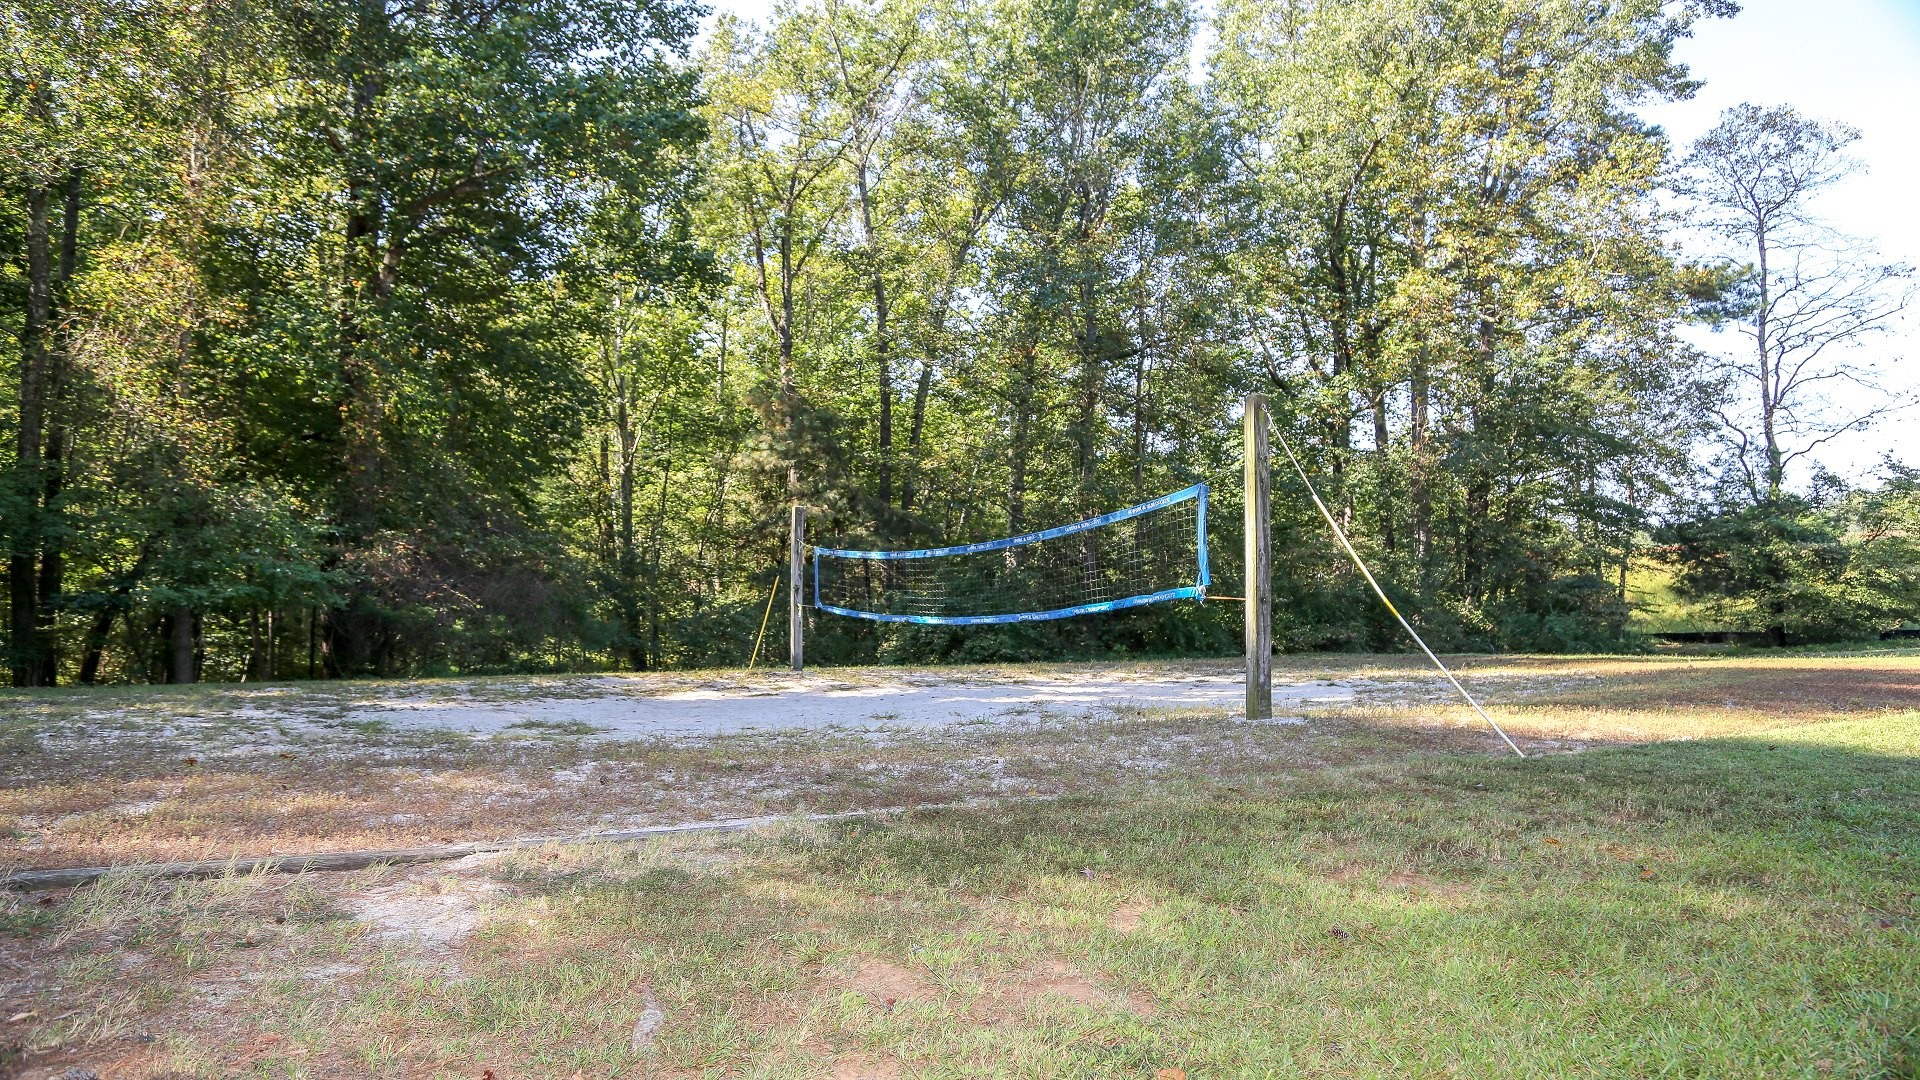 An outdoor sand volleyball court with one net